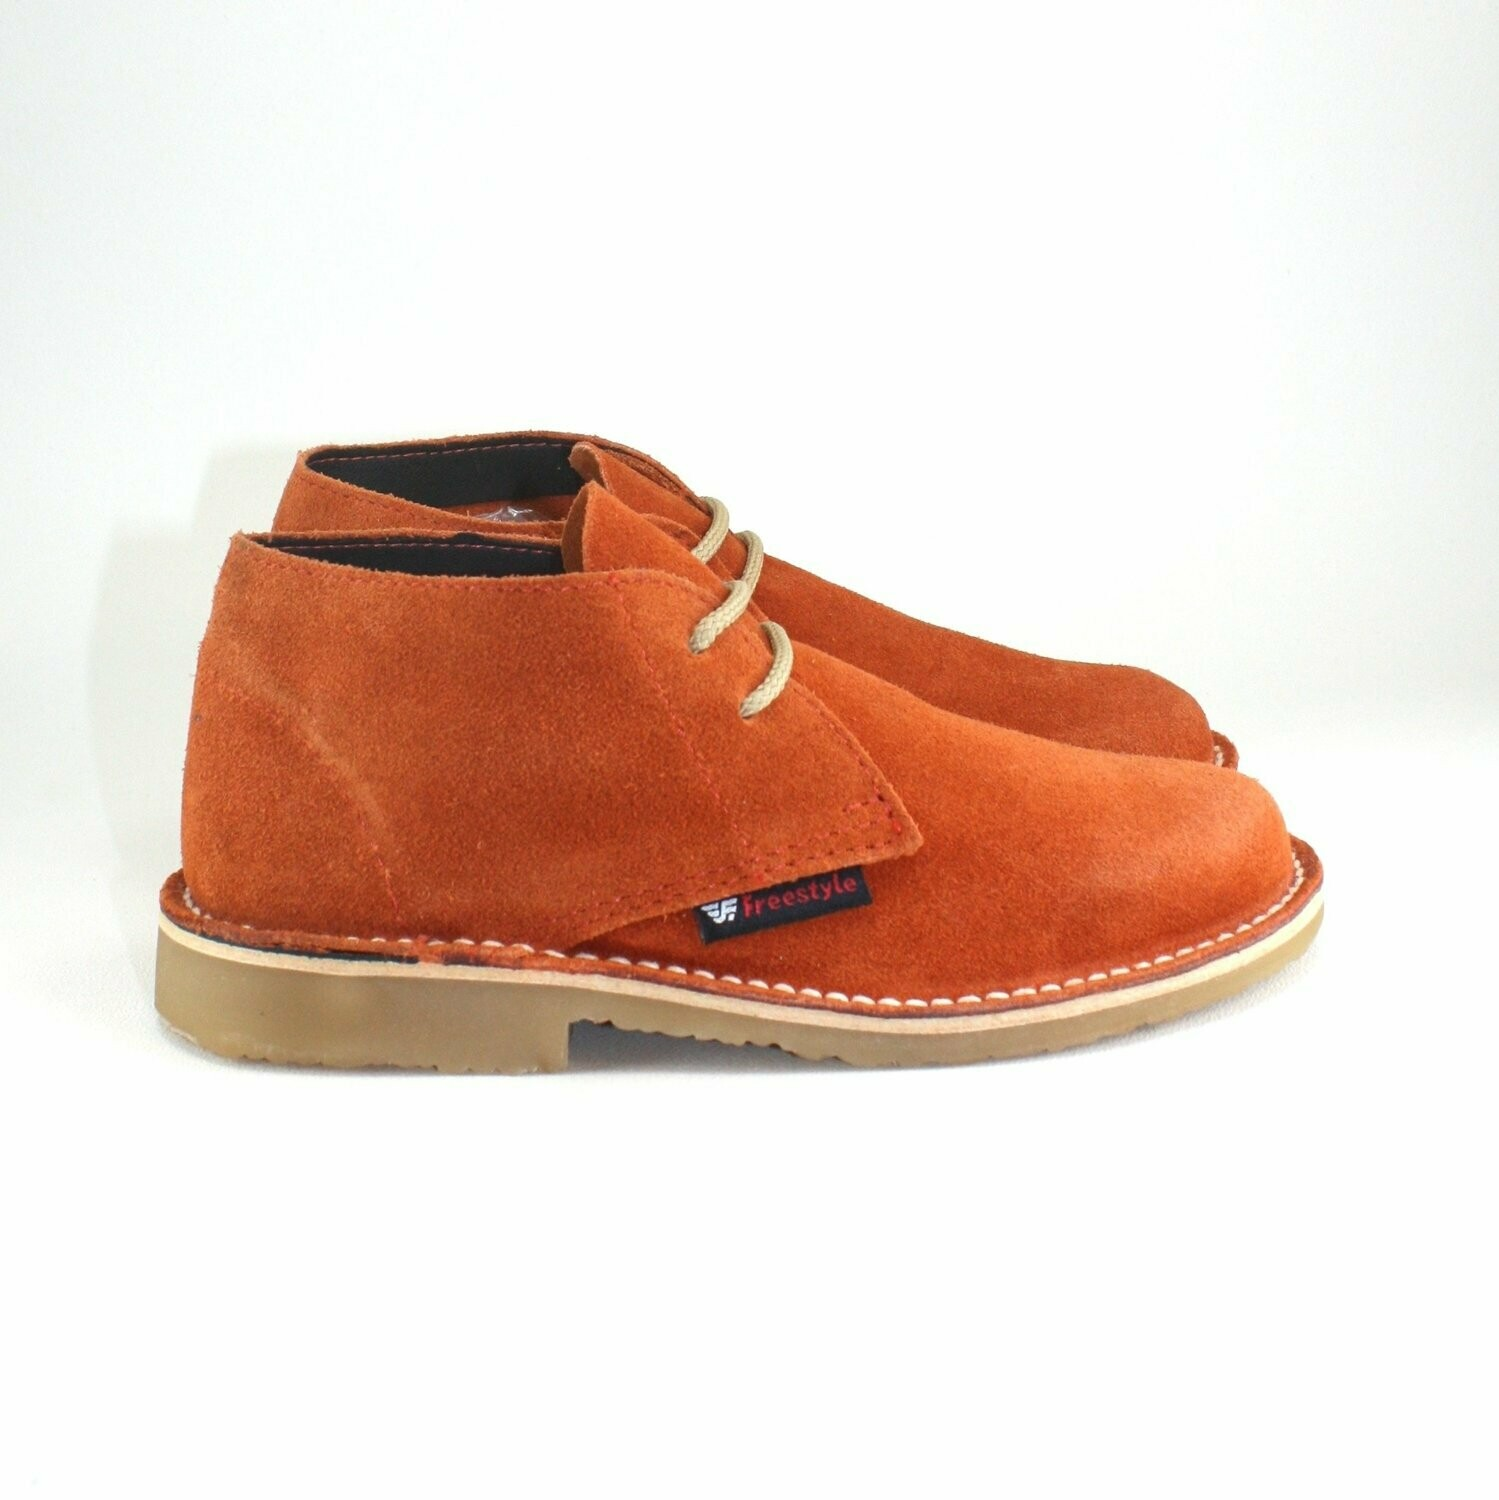 Veldskoen Suede Orange